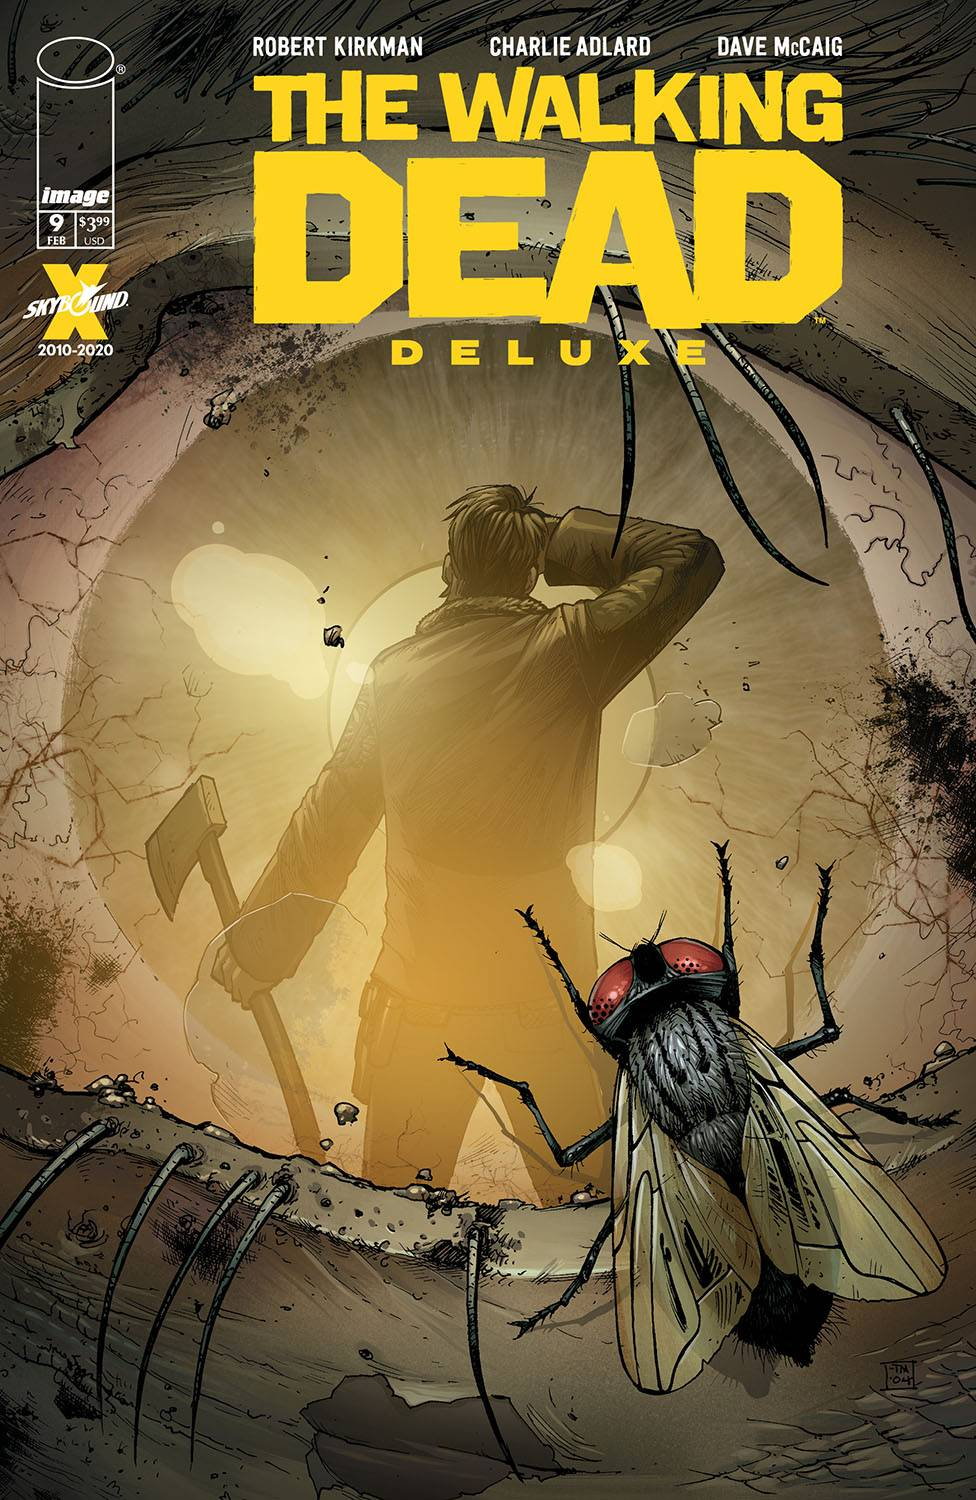 WALKING DEAD DLX #9 CVR B MOORE & MCCAIG (MR)